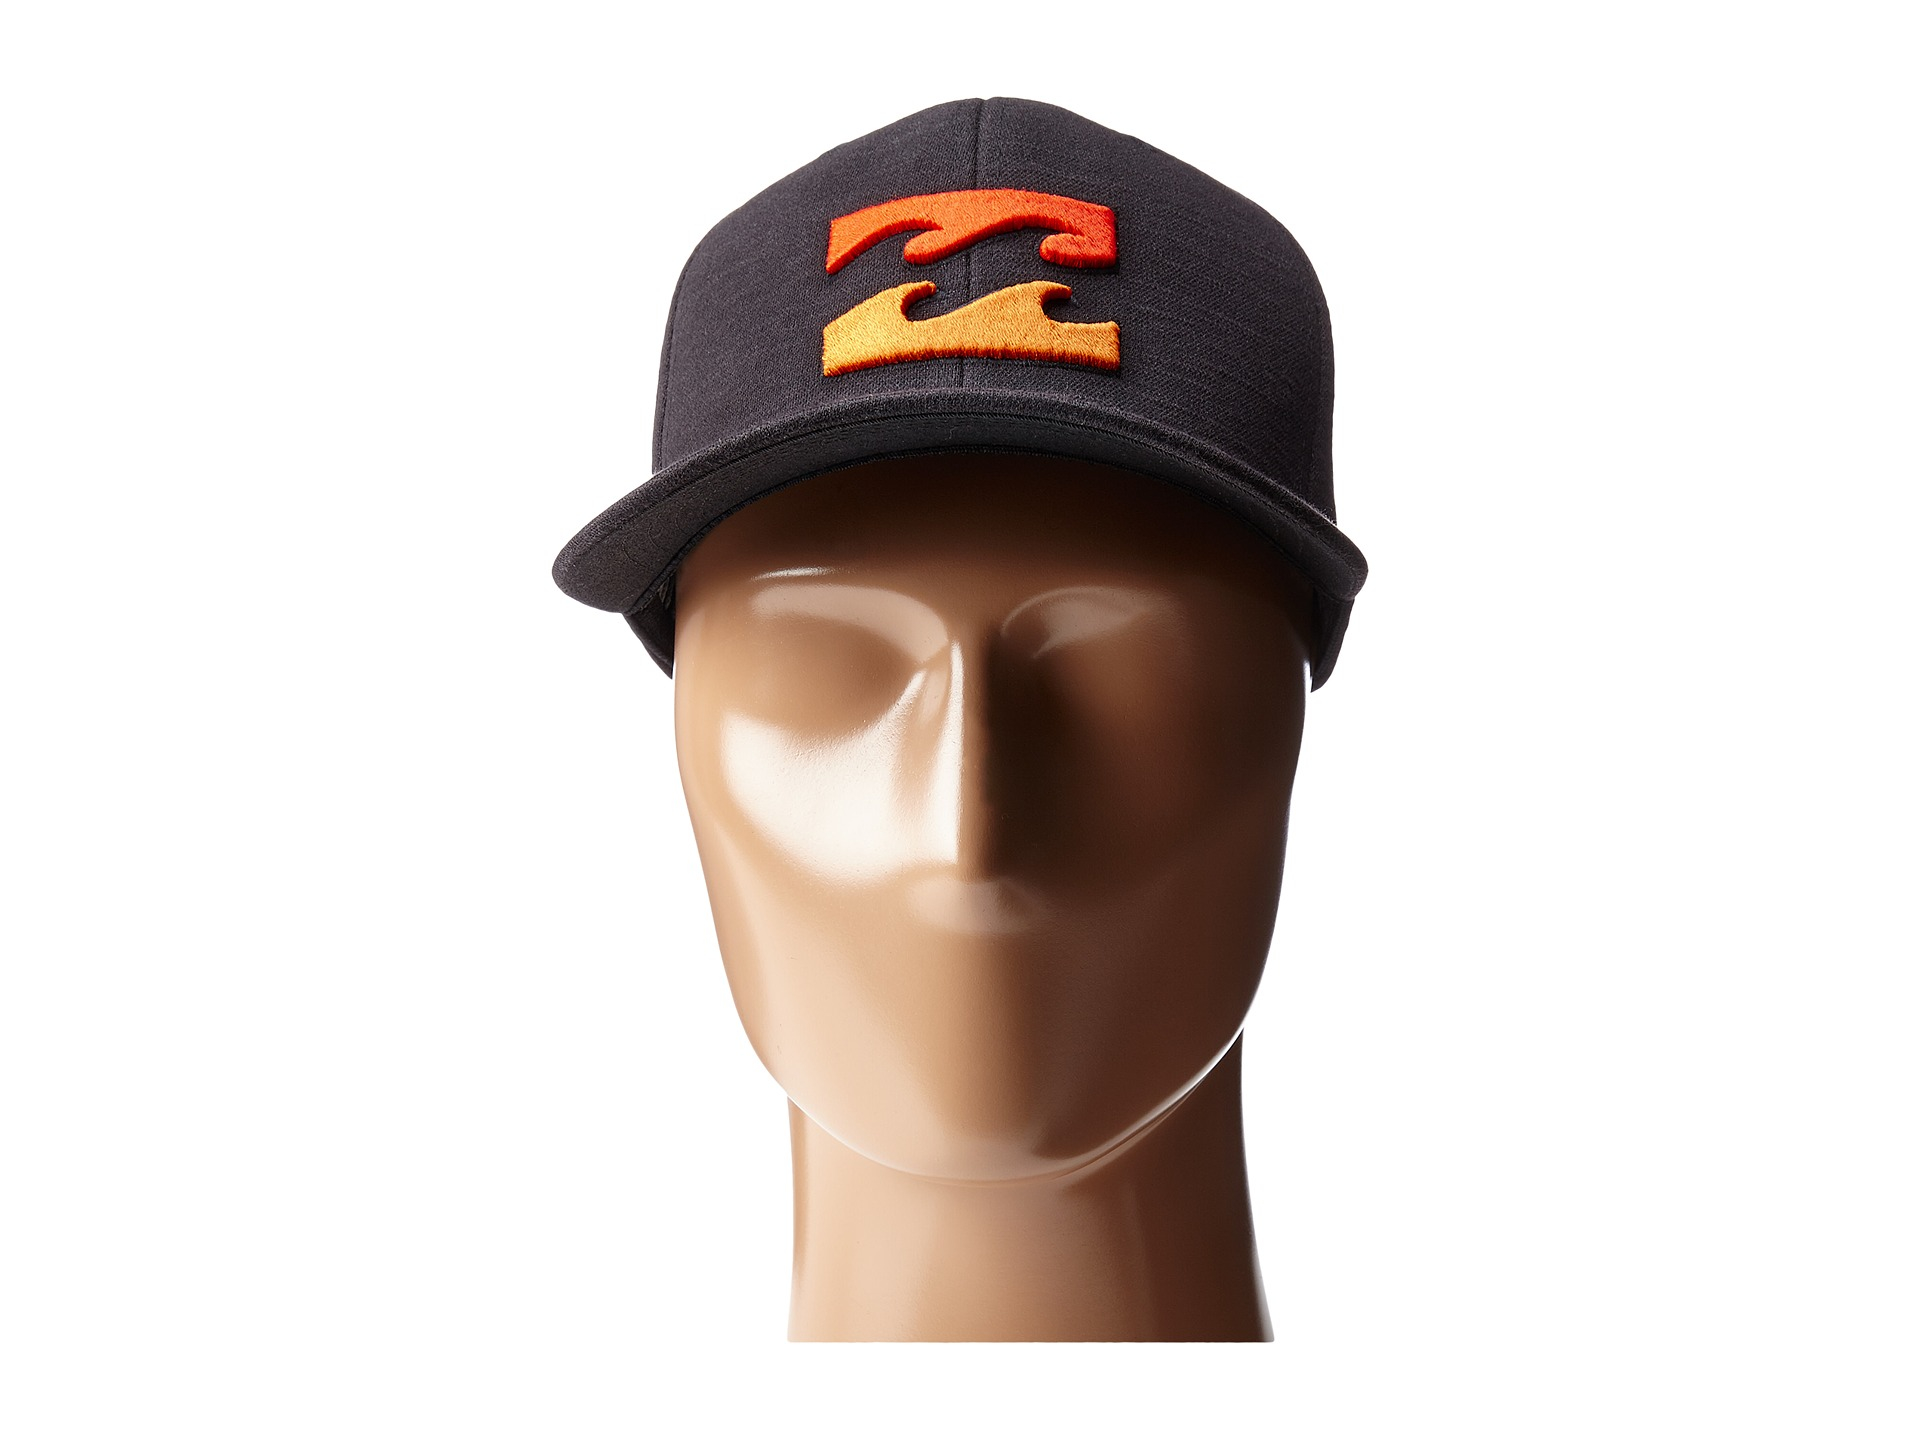 new product 4ff72 665dd ... low price lyst billabong all day flexfit hat in black for men e00d2  7f0a4